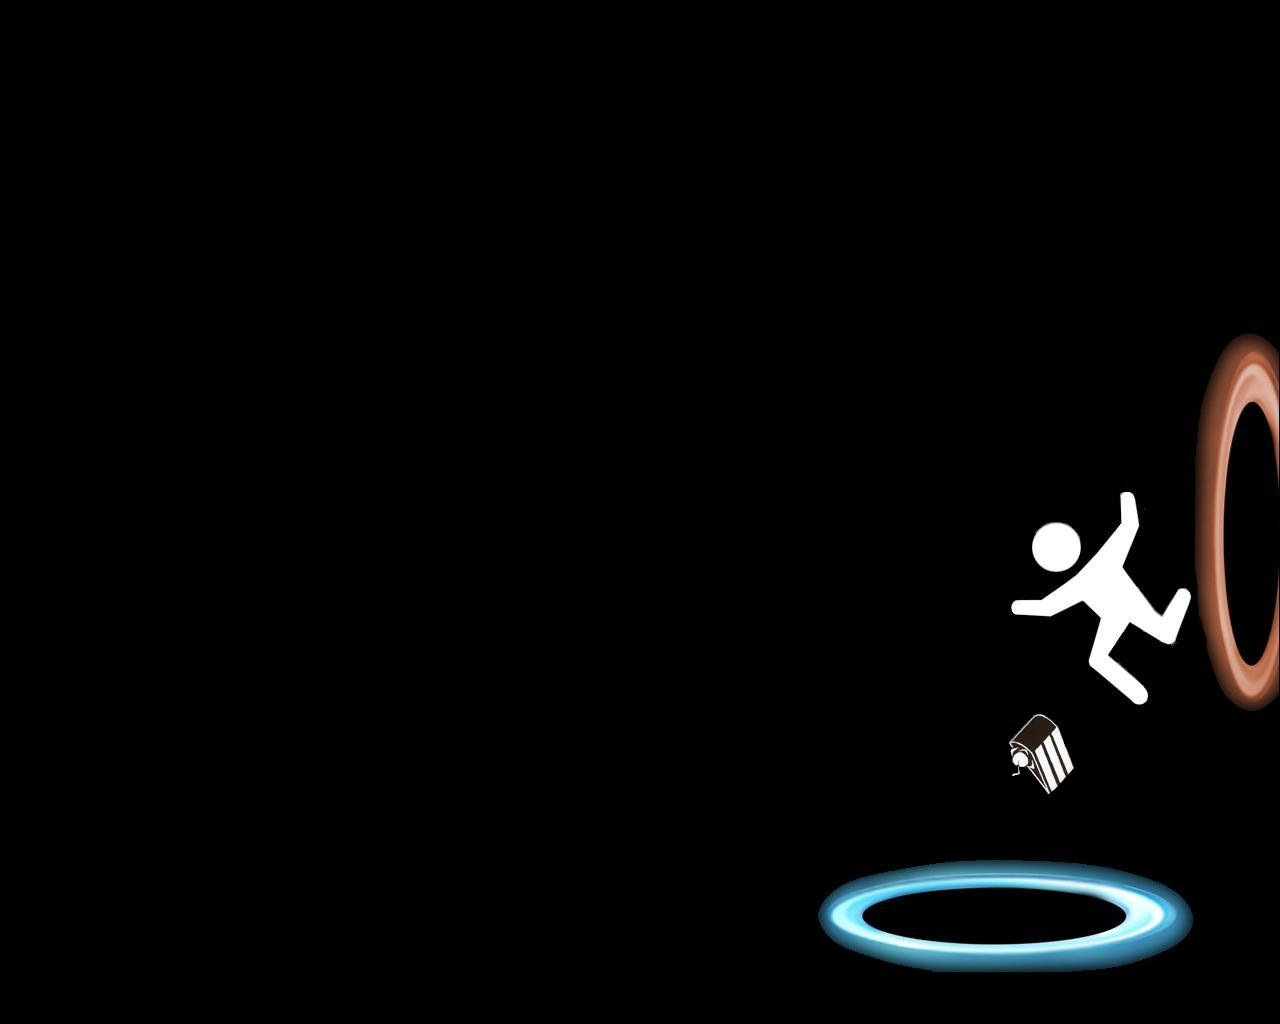 portal the game images falling hd fond d écran and background